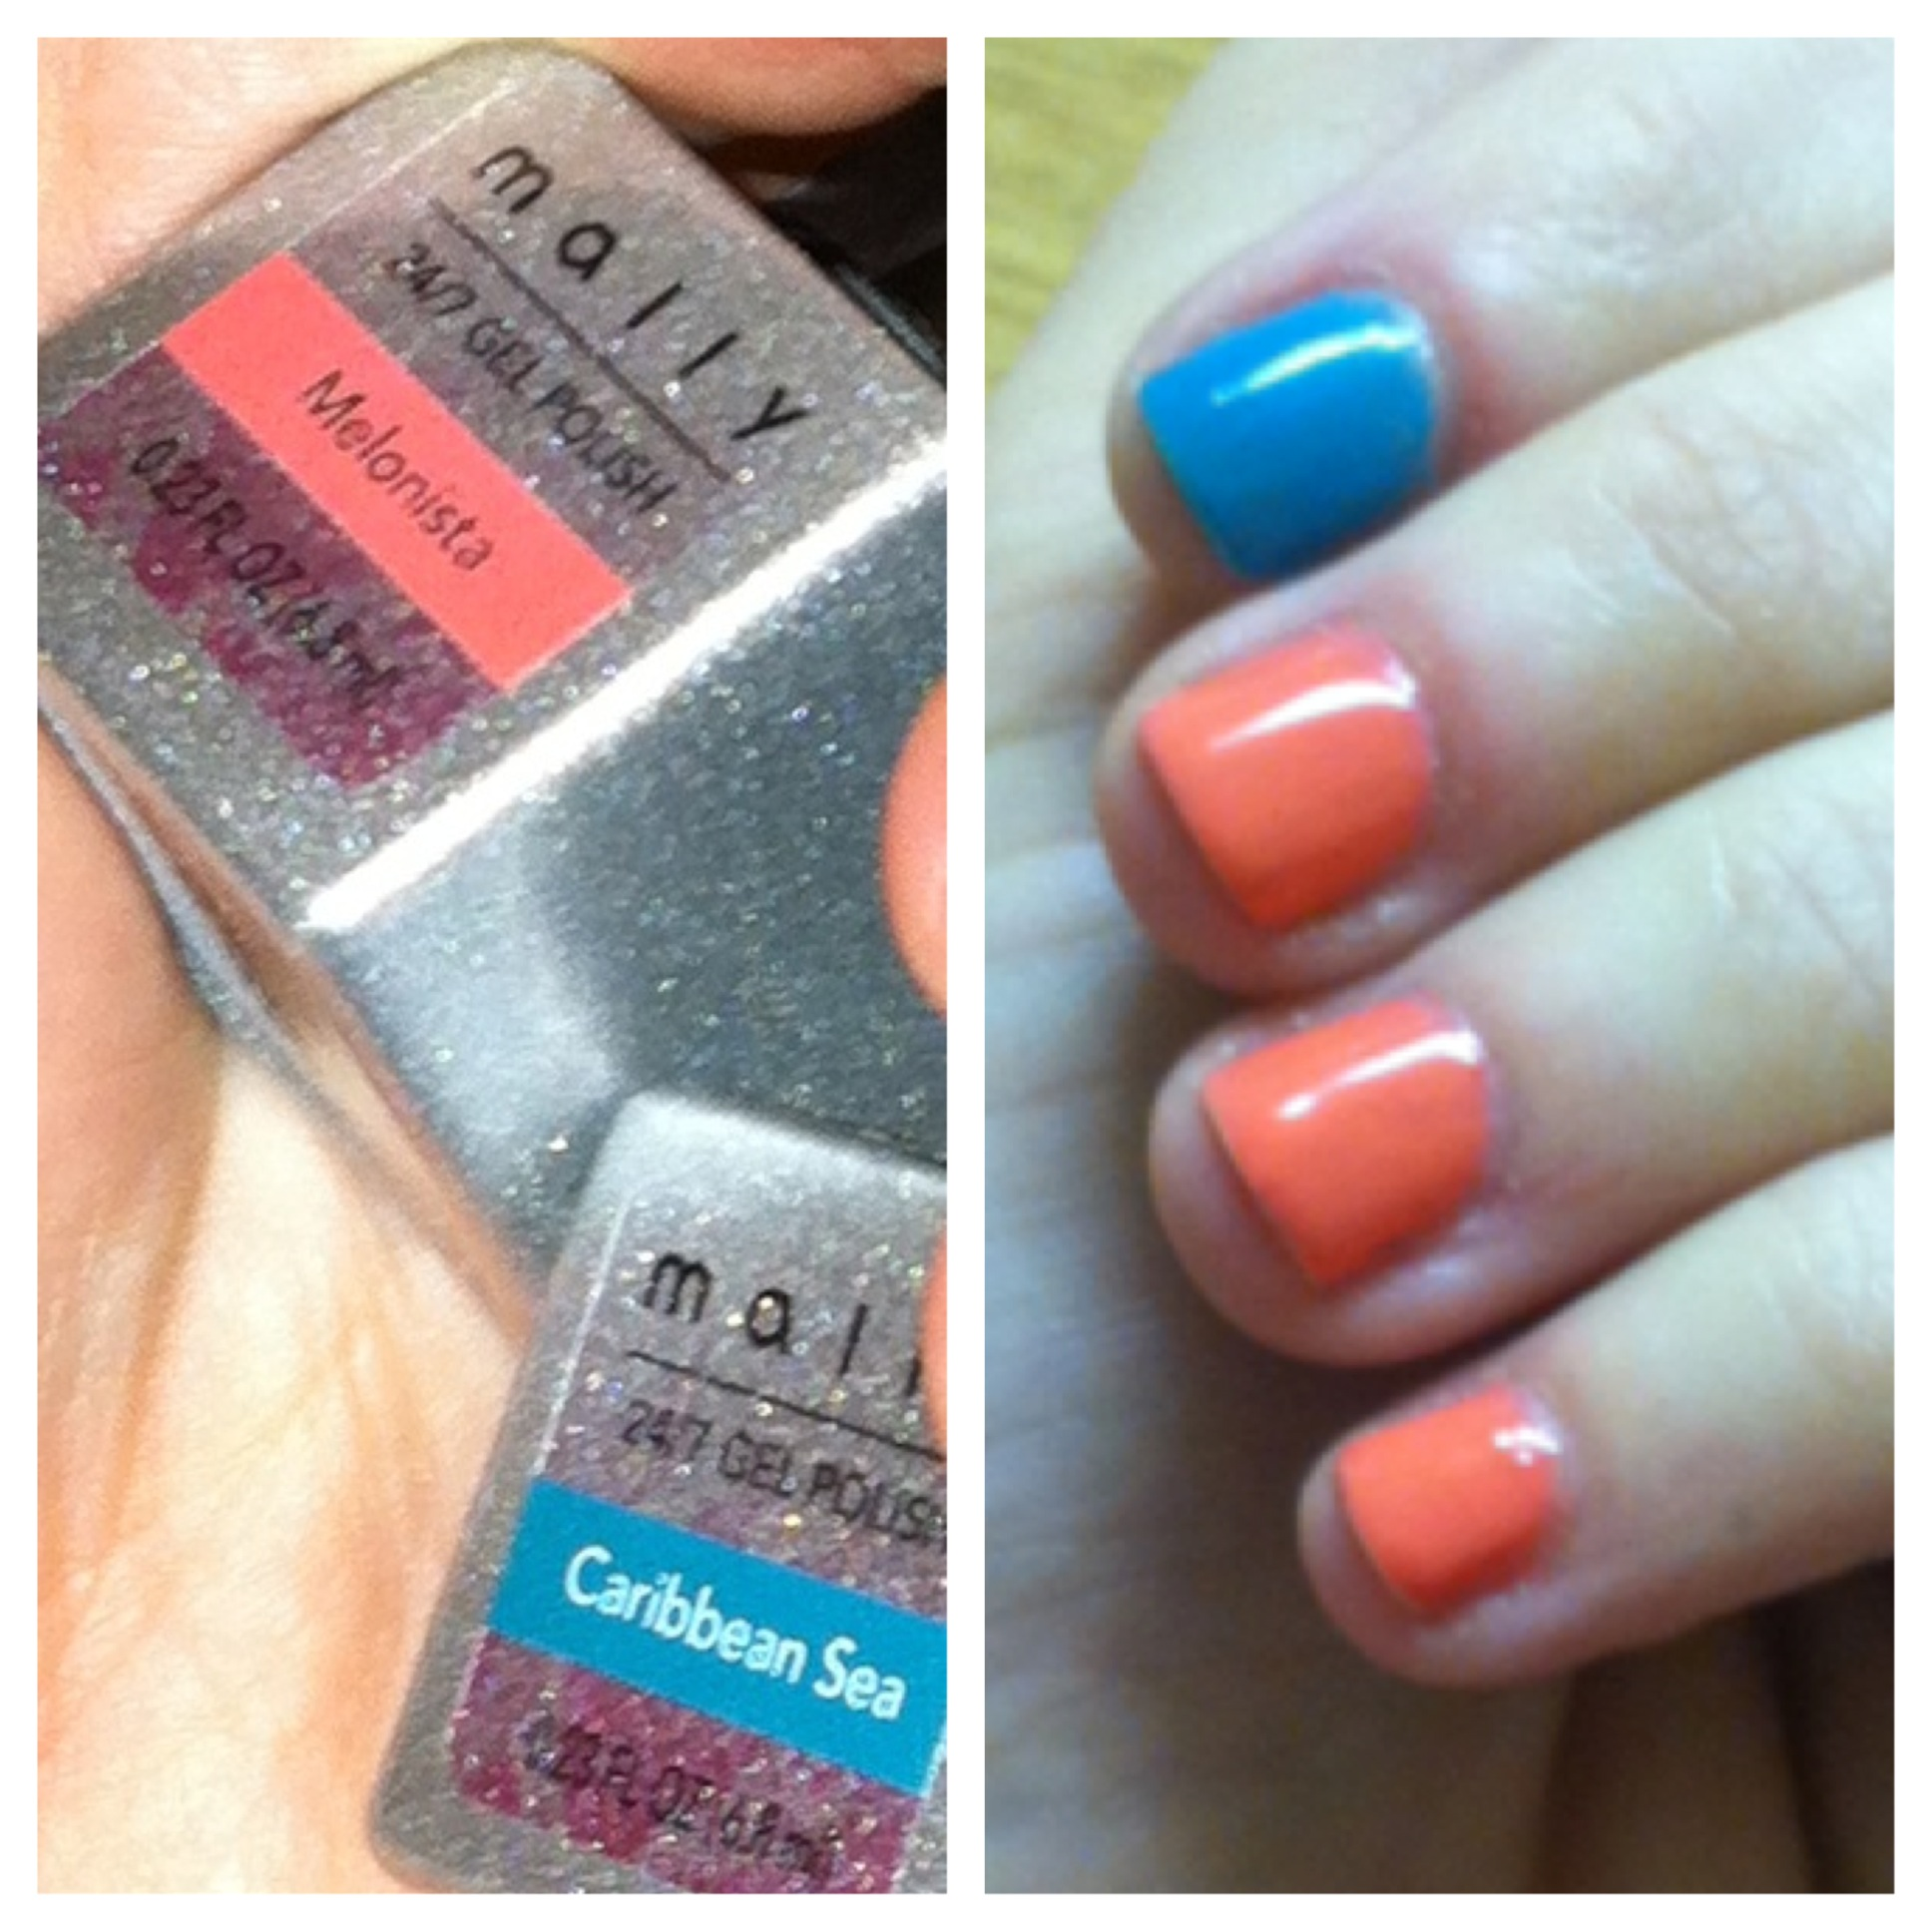 Mally 24/7 Gel Polish Nail Color photos and review – You can have it ...